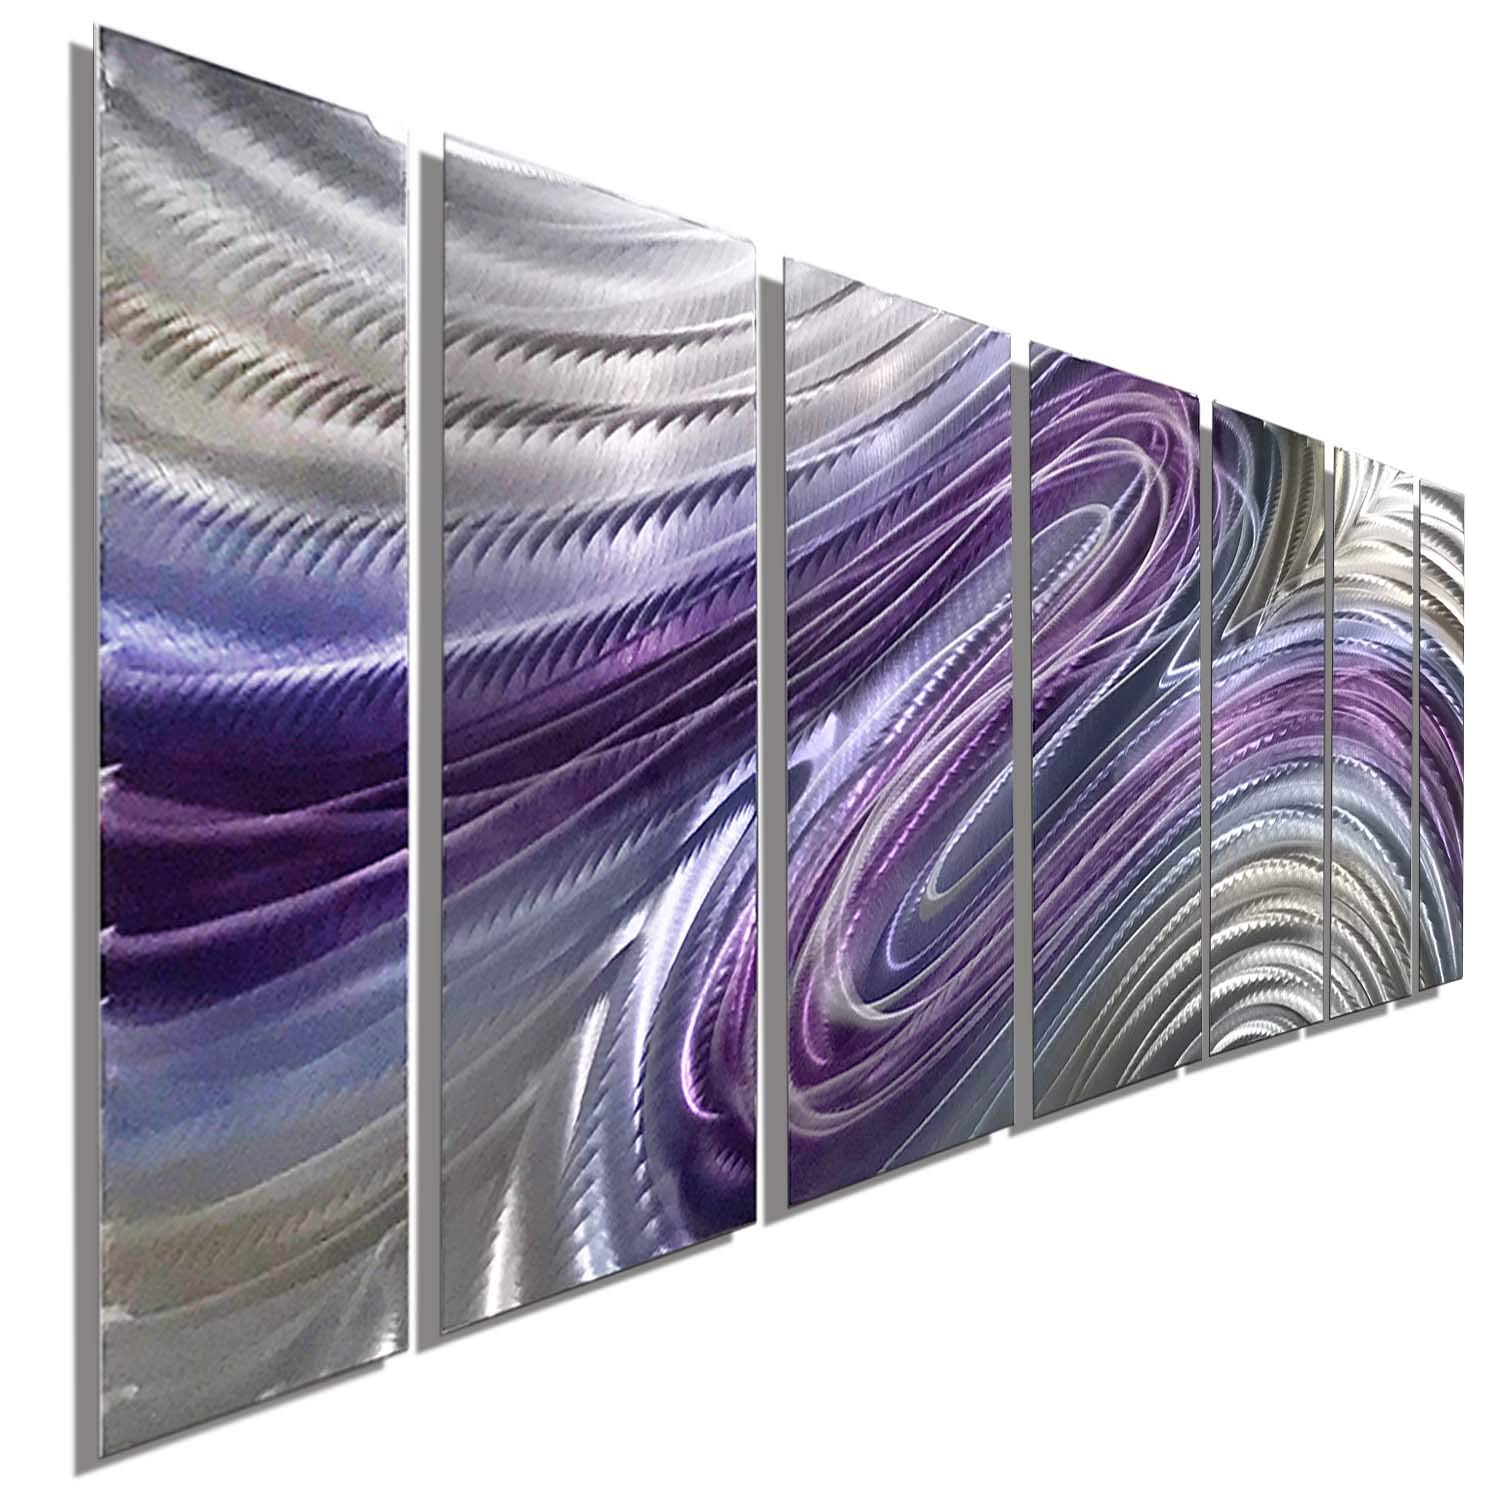 """Purple Large Metal Wall Art, Contemporary Wall Painting, Abstract Hand-Painted Metallic Wall Sculpture - Metal Wall Decor by Jon Allen Metal Art - Wild Imagination - 68"""" x 24"""""""